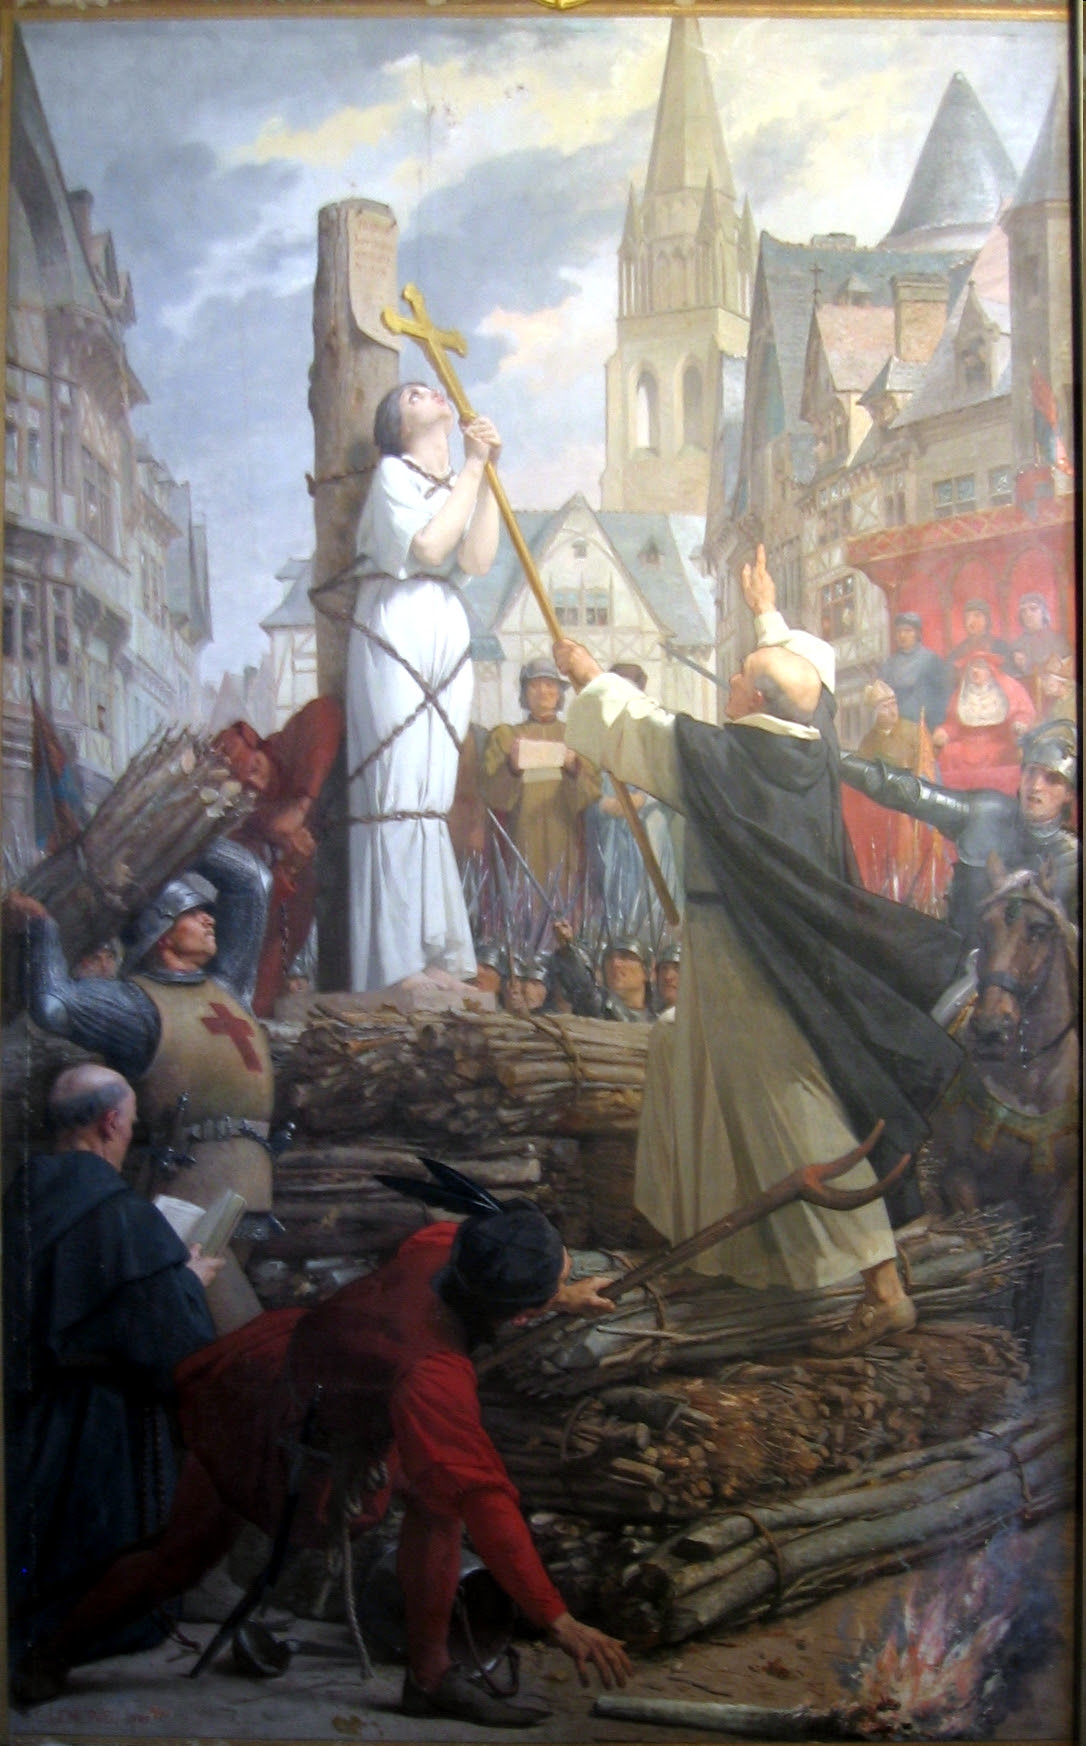 http://upload.wikimedia.org/wikipedia/commons/9/9c/Jeanne_d%27Arc_-_Panth%C3%A9on_IV.jpg